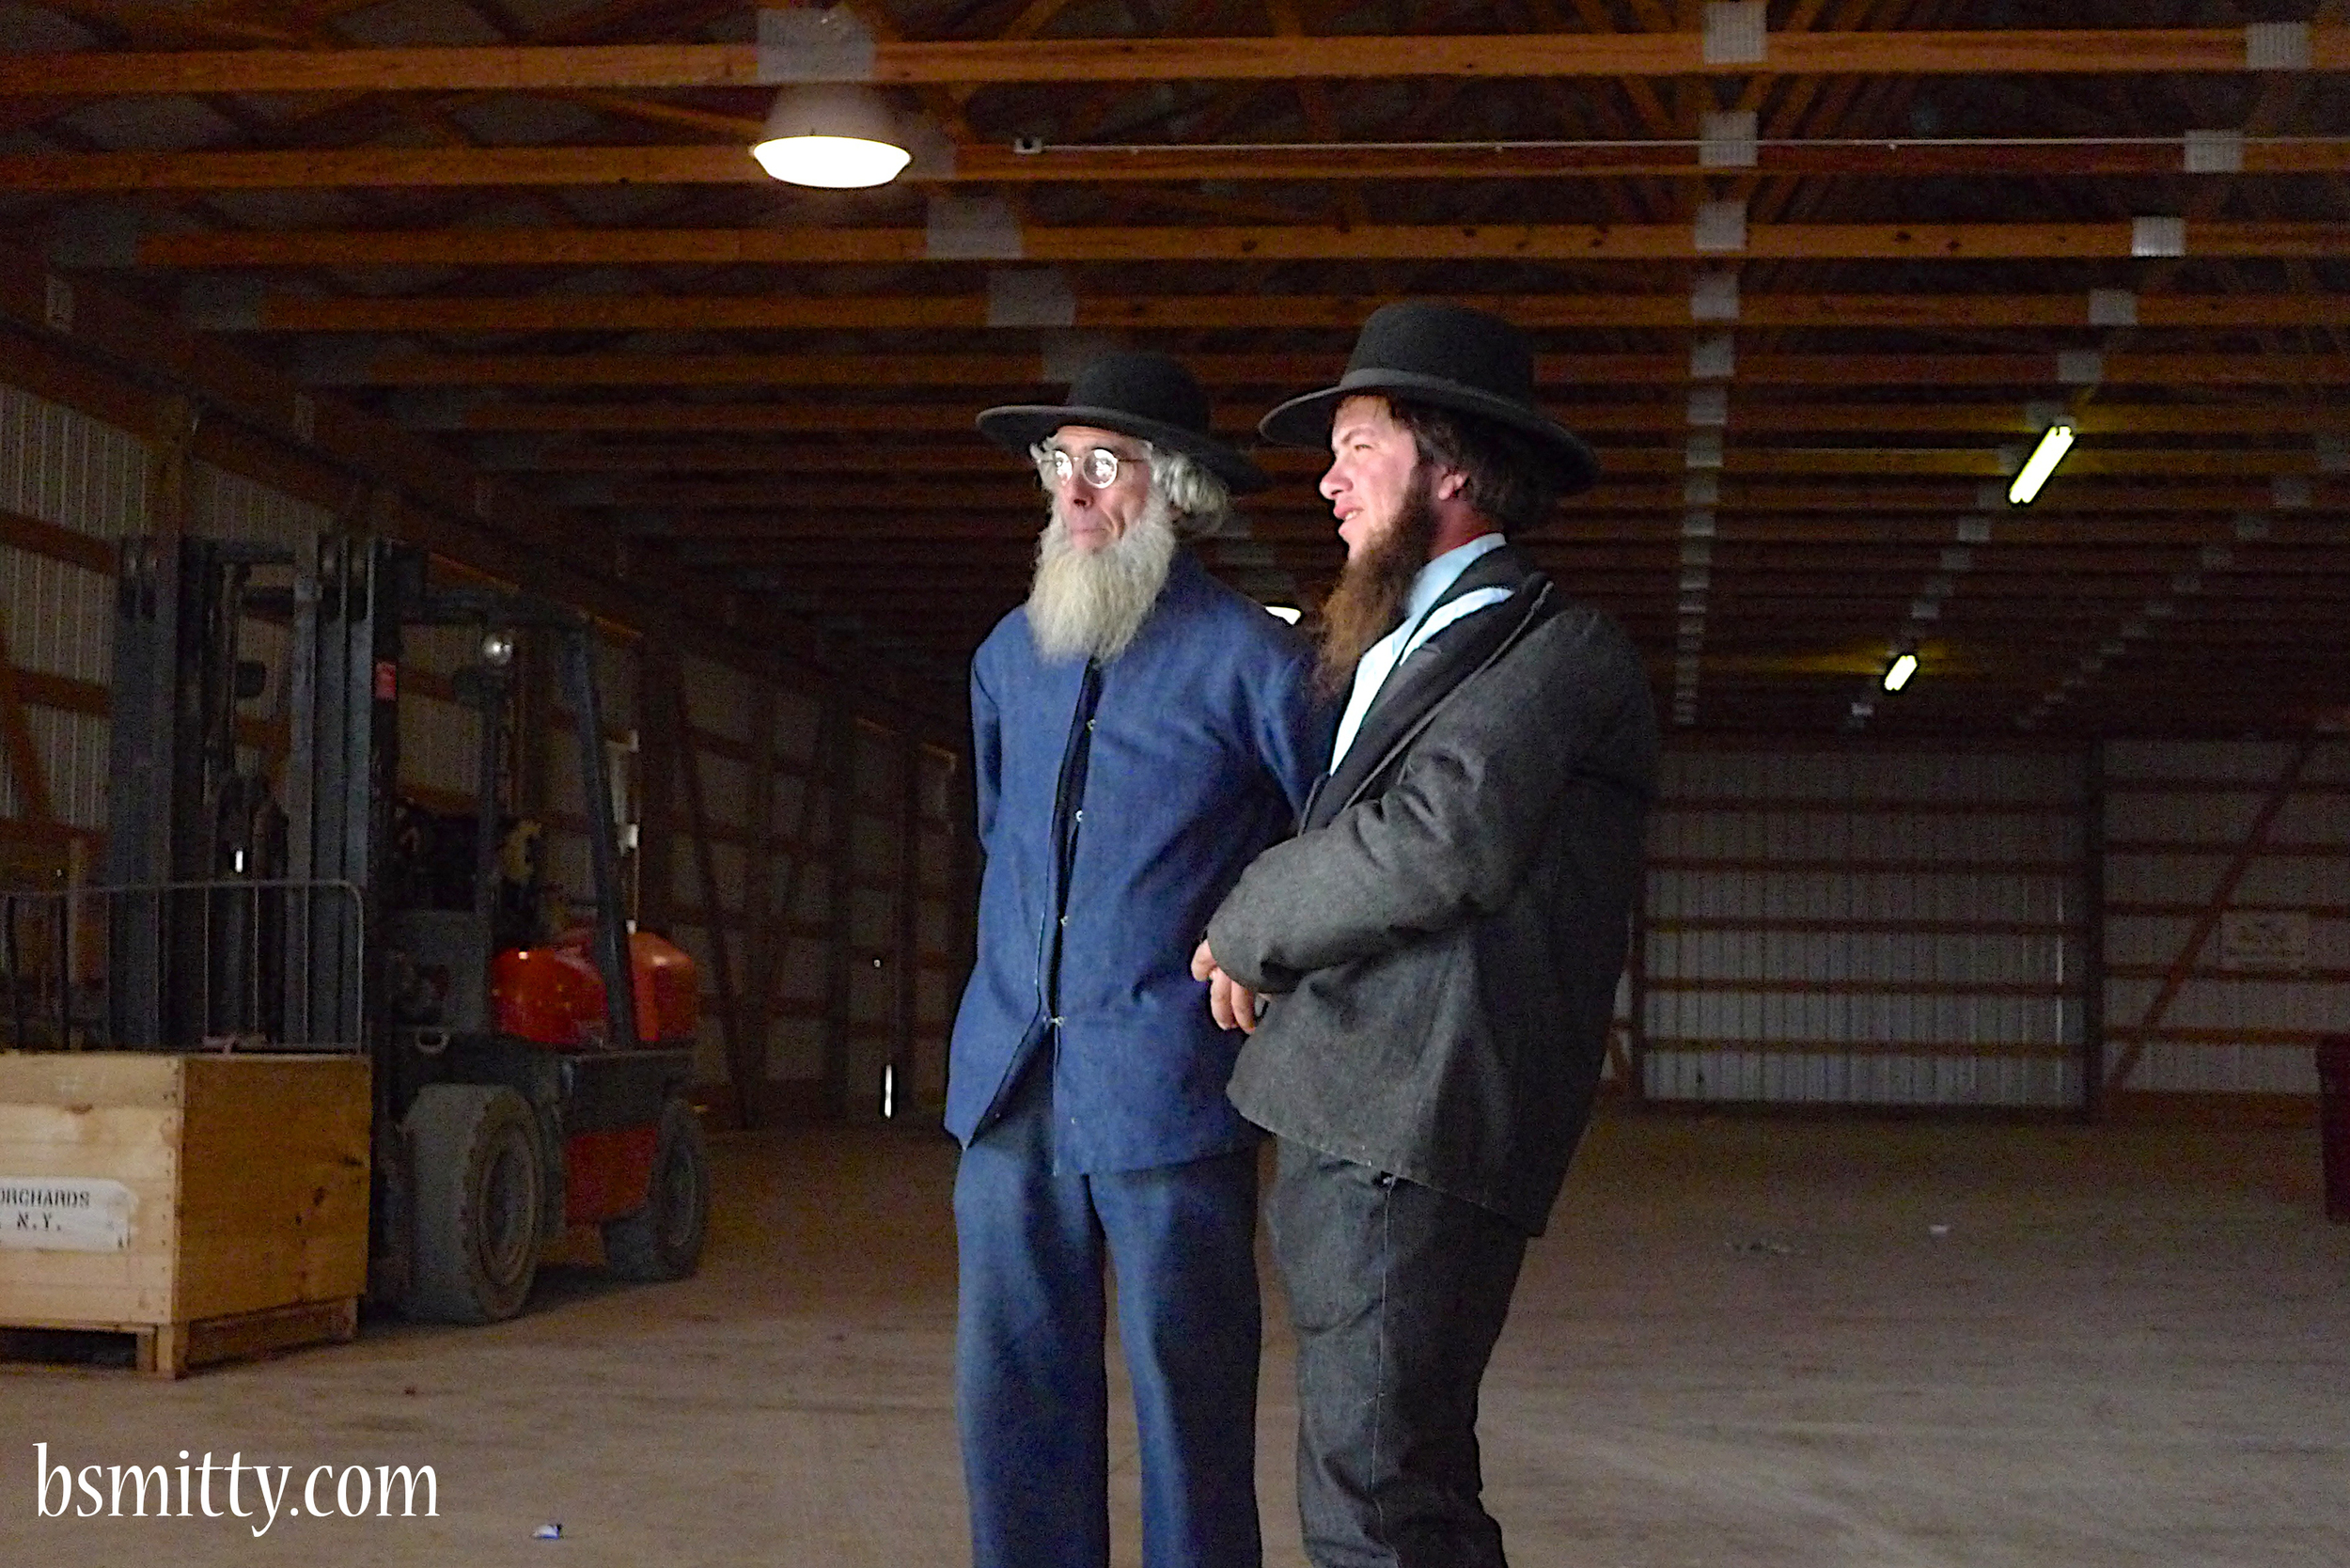 amish - photo bsmitty 5.jpg